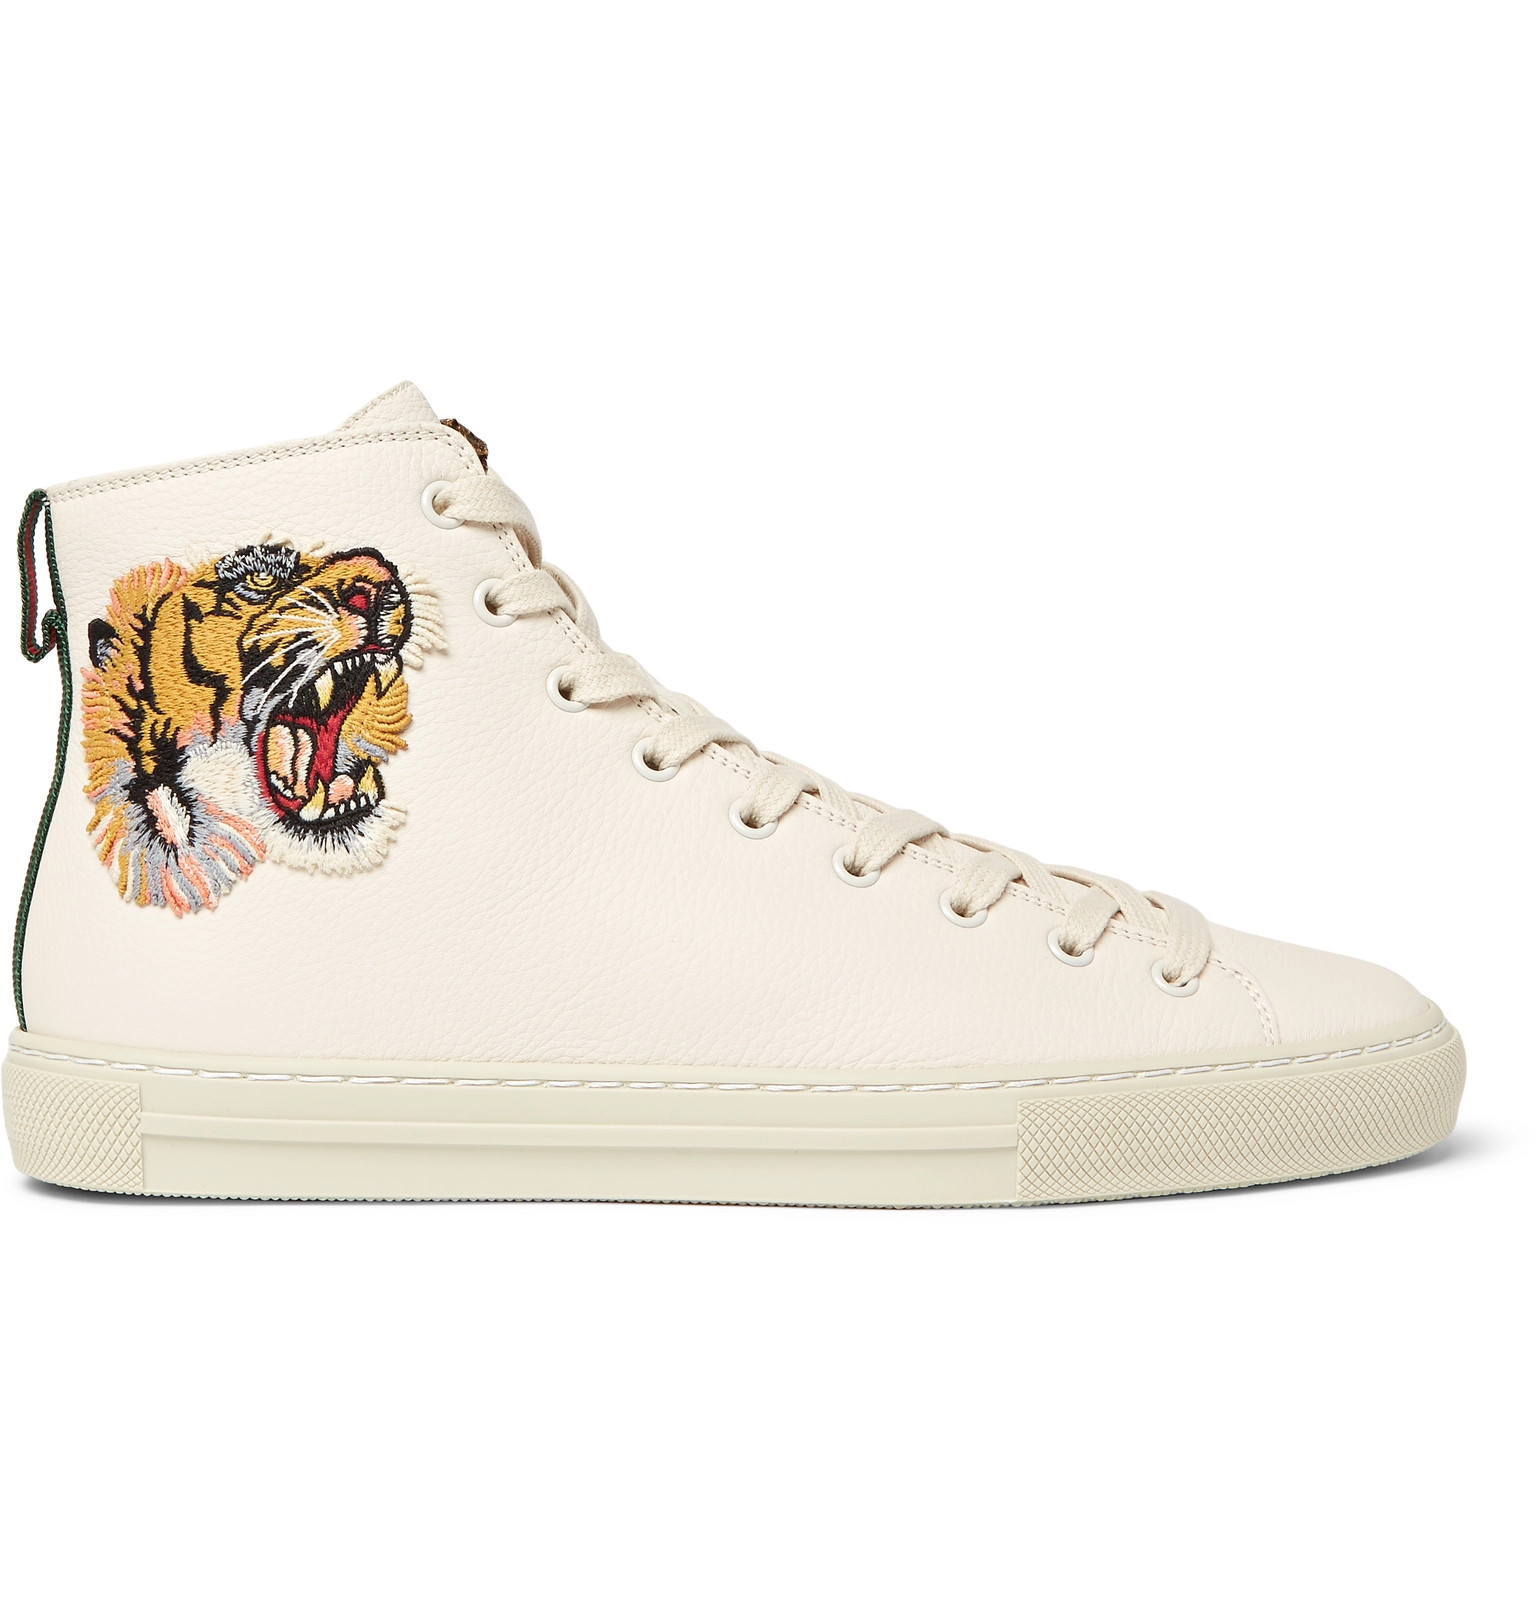 ee502a3679 Gucci - Major Appliquéd Full-Grain Leather High-Top Sneakers